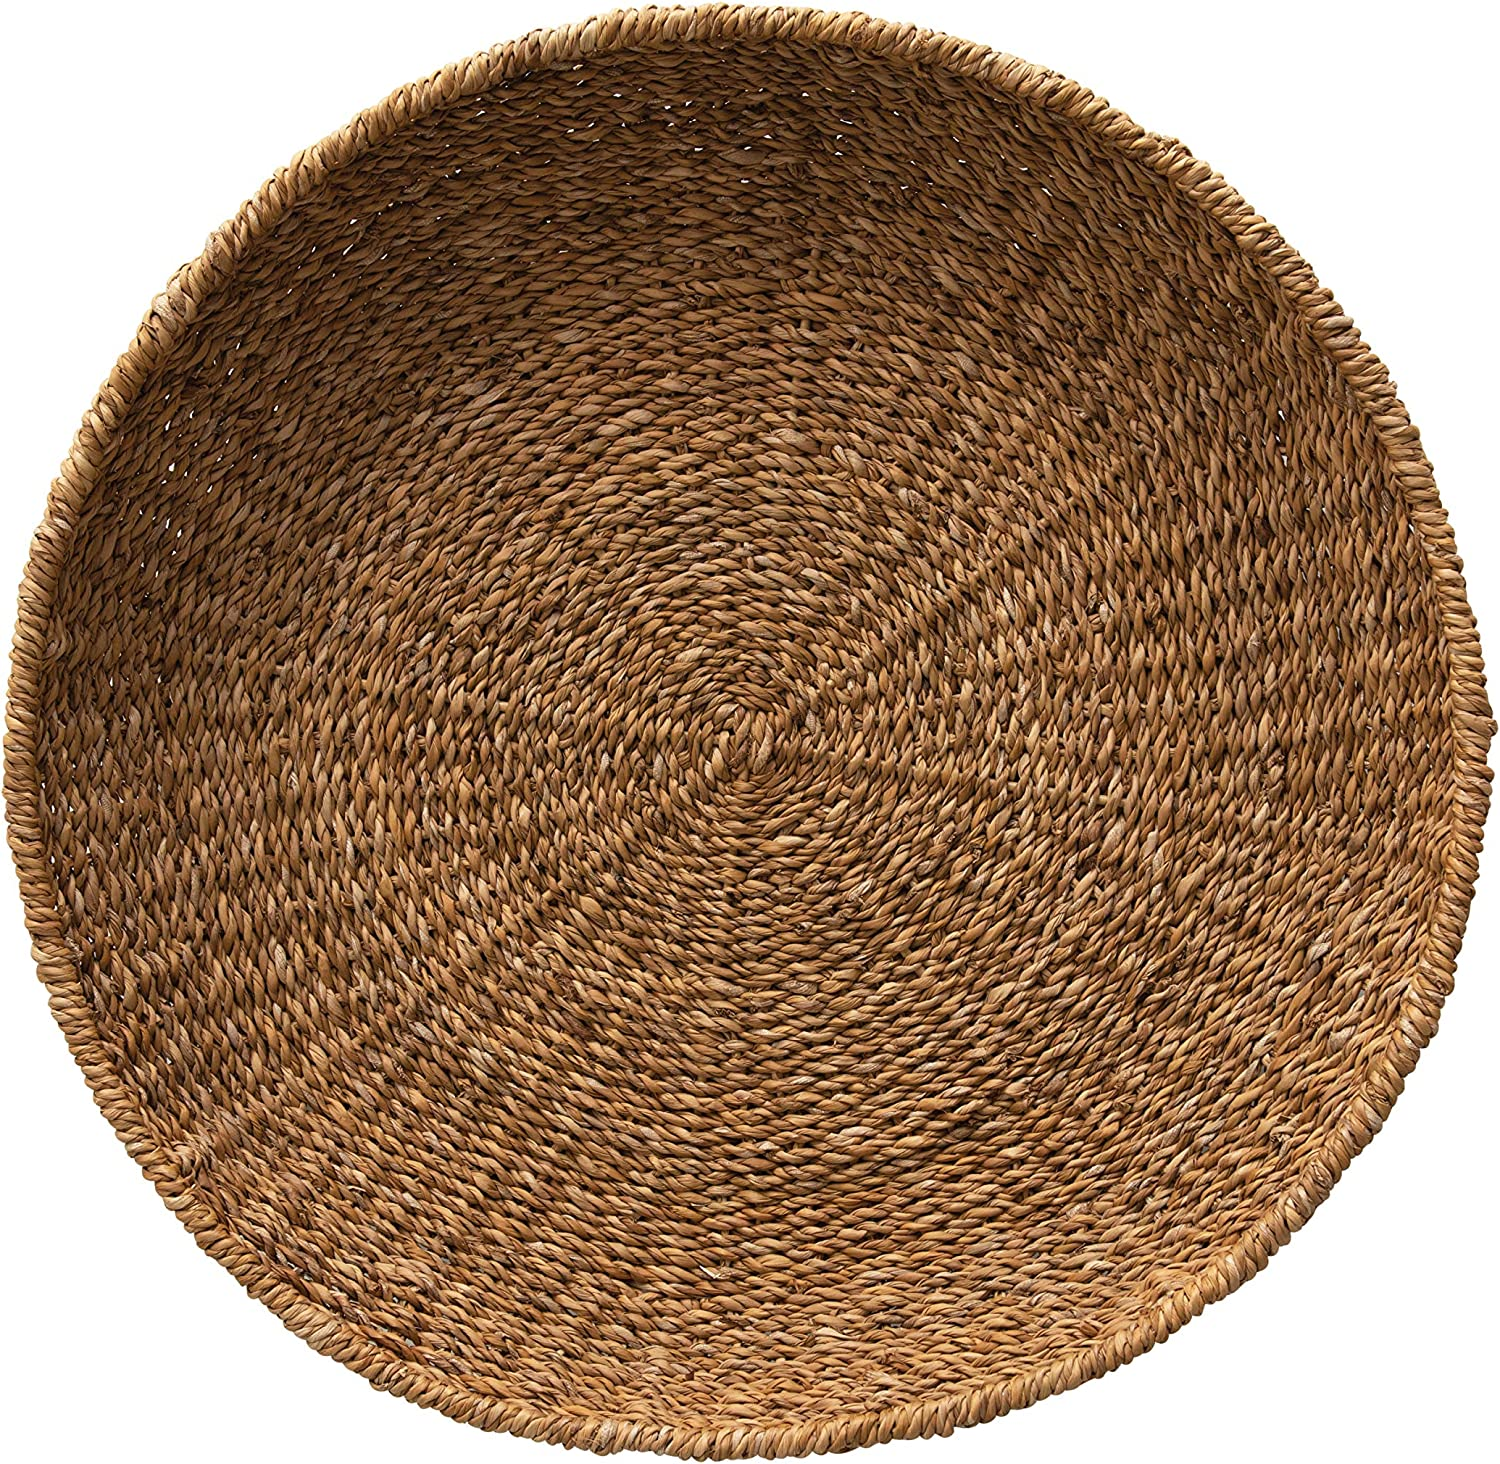 Creative Co-op Hand-Woven Decorative Seagrass Tray, Natural